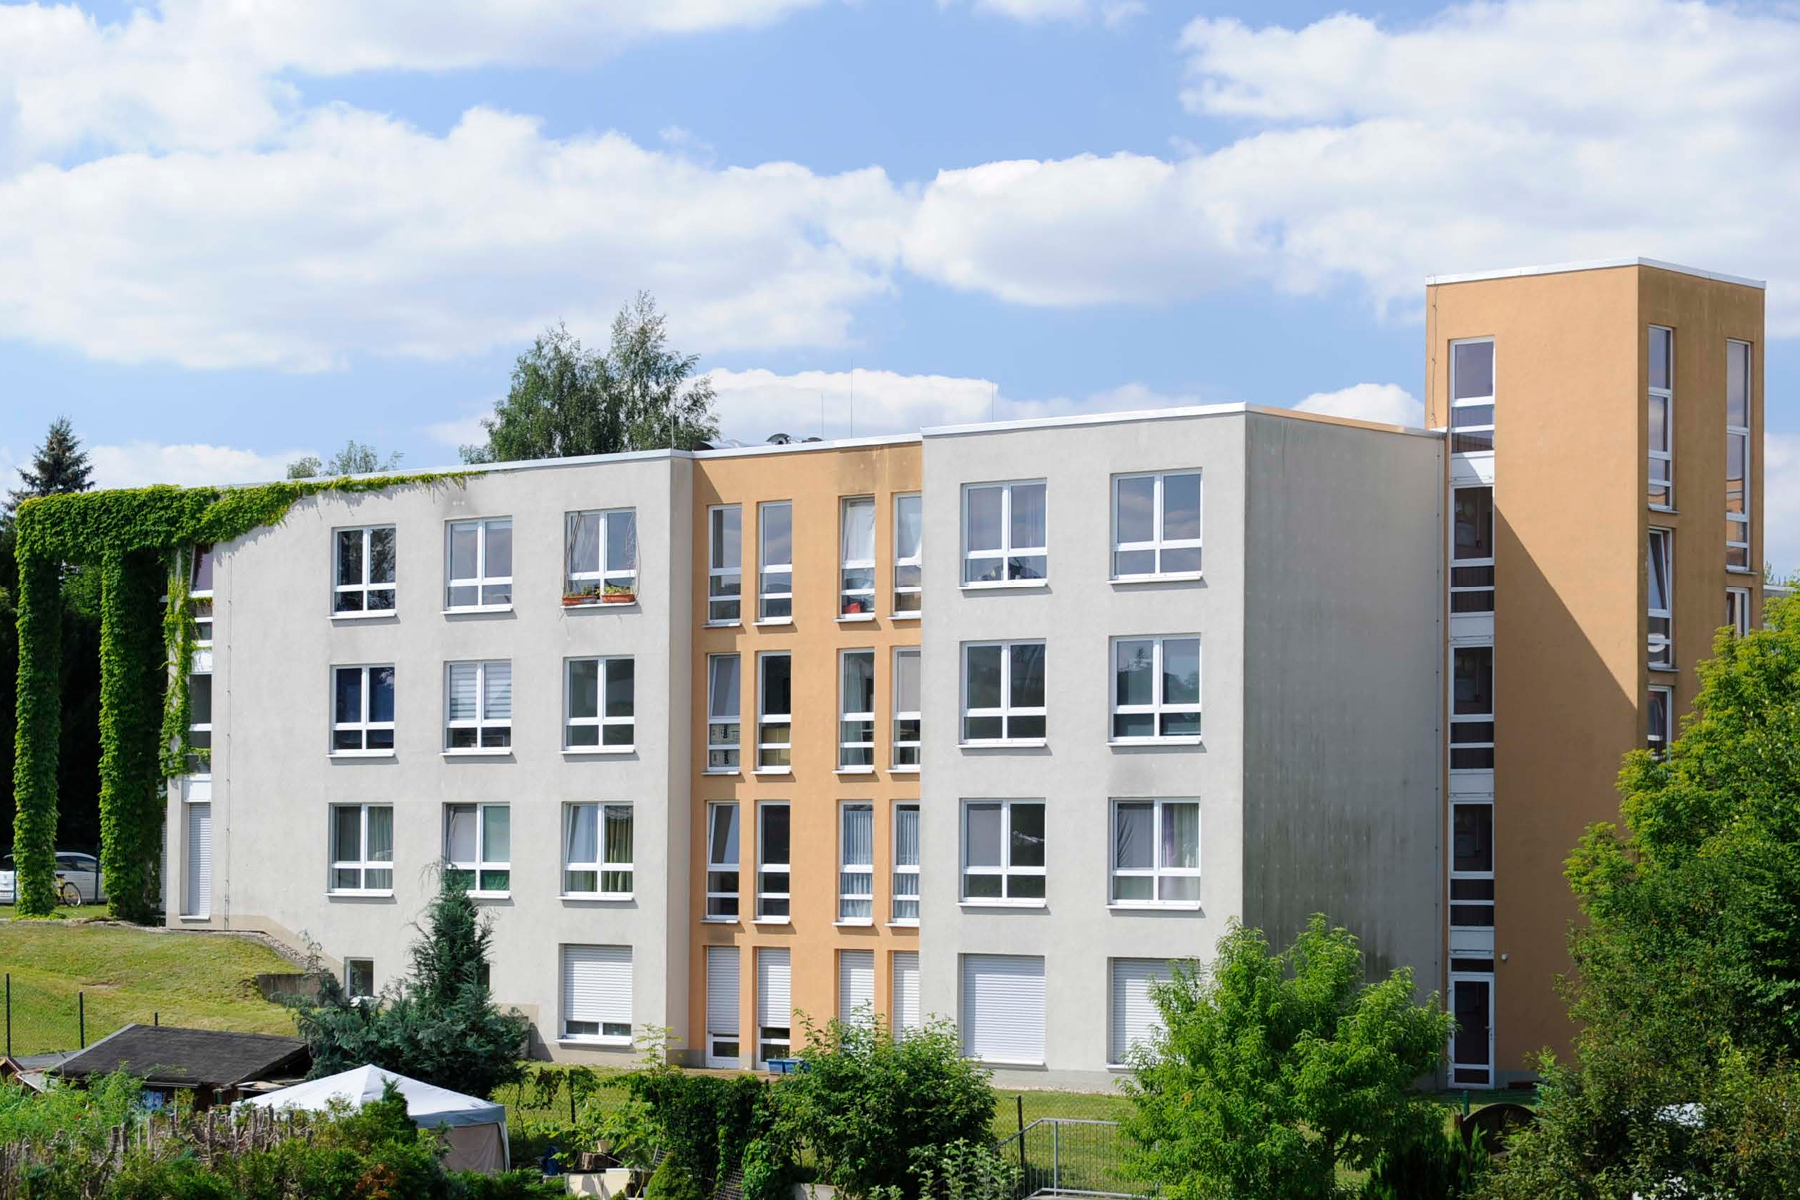 Multi-Family Homes for Sale at High Yielding Investment In Renowned Saxon University Mittweida, Saxony Germany